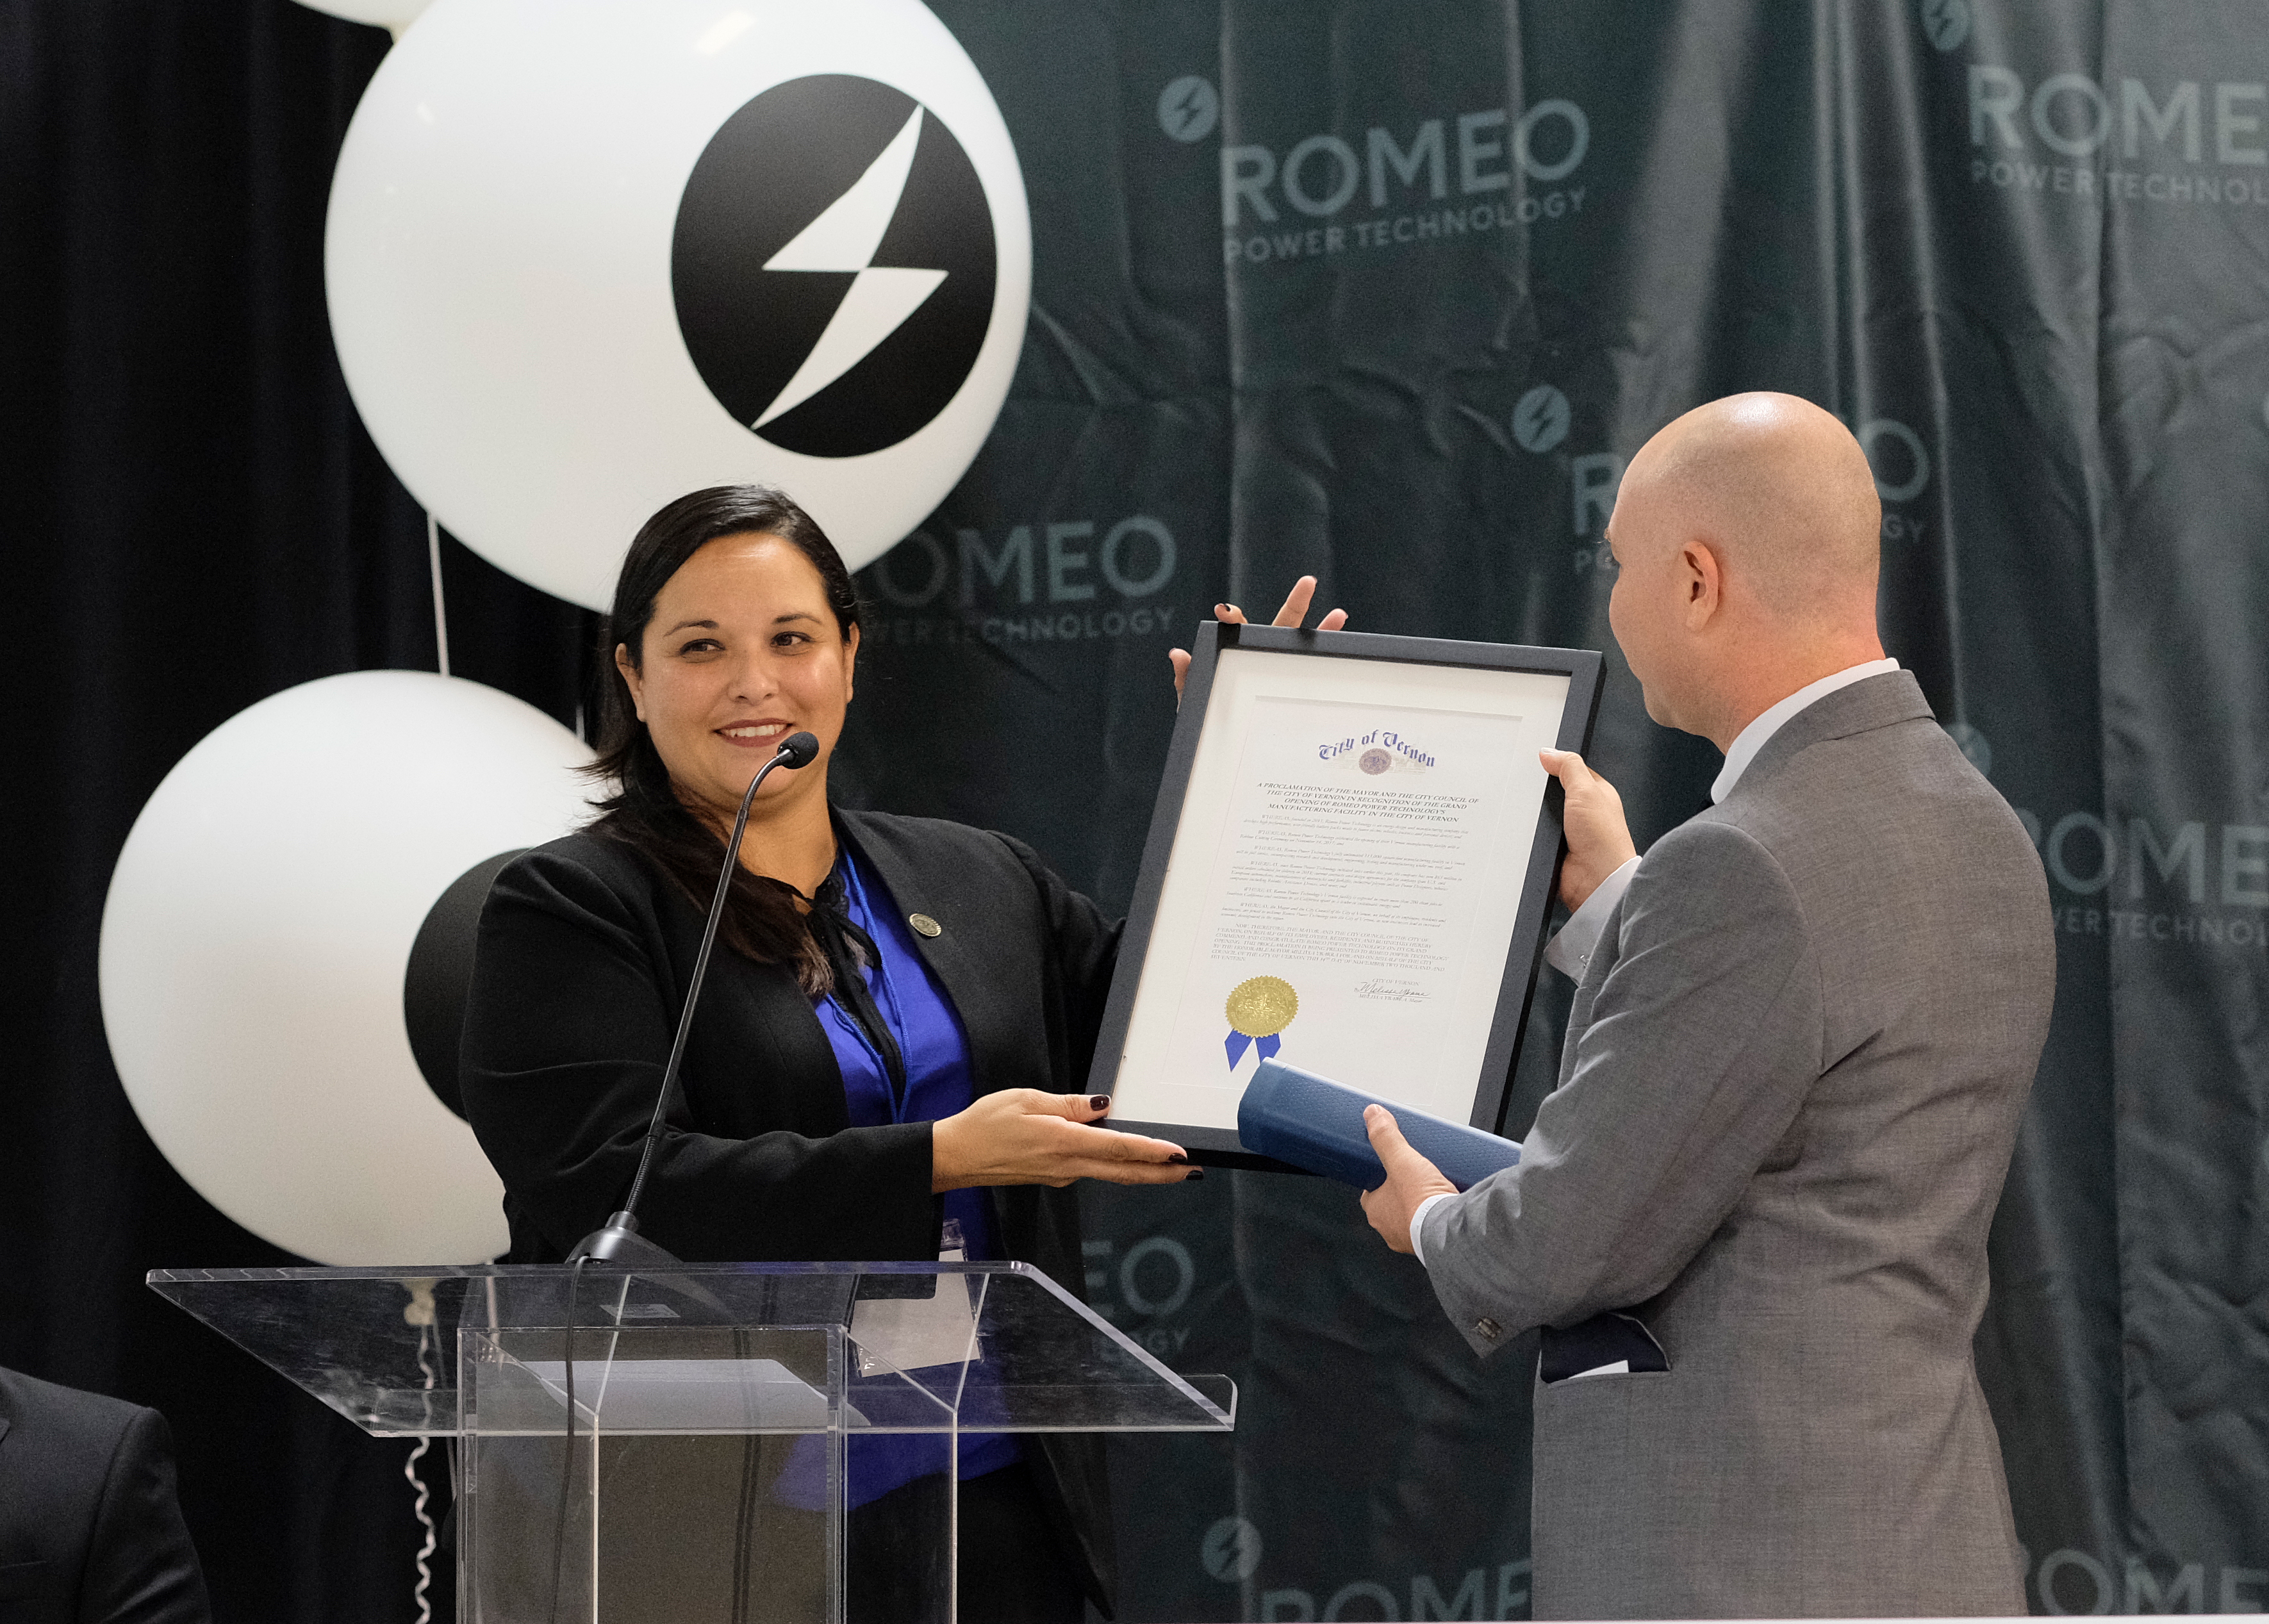 Romeo Power Technology Inaugurates the West Coast\'s First Dedicated ...